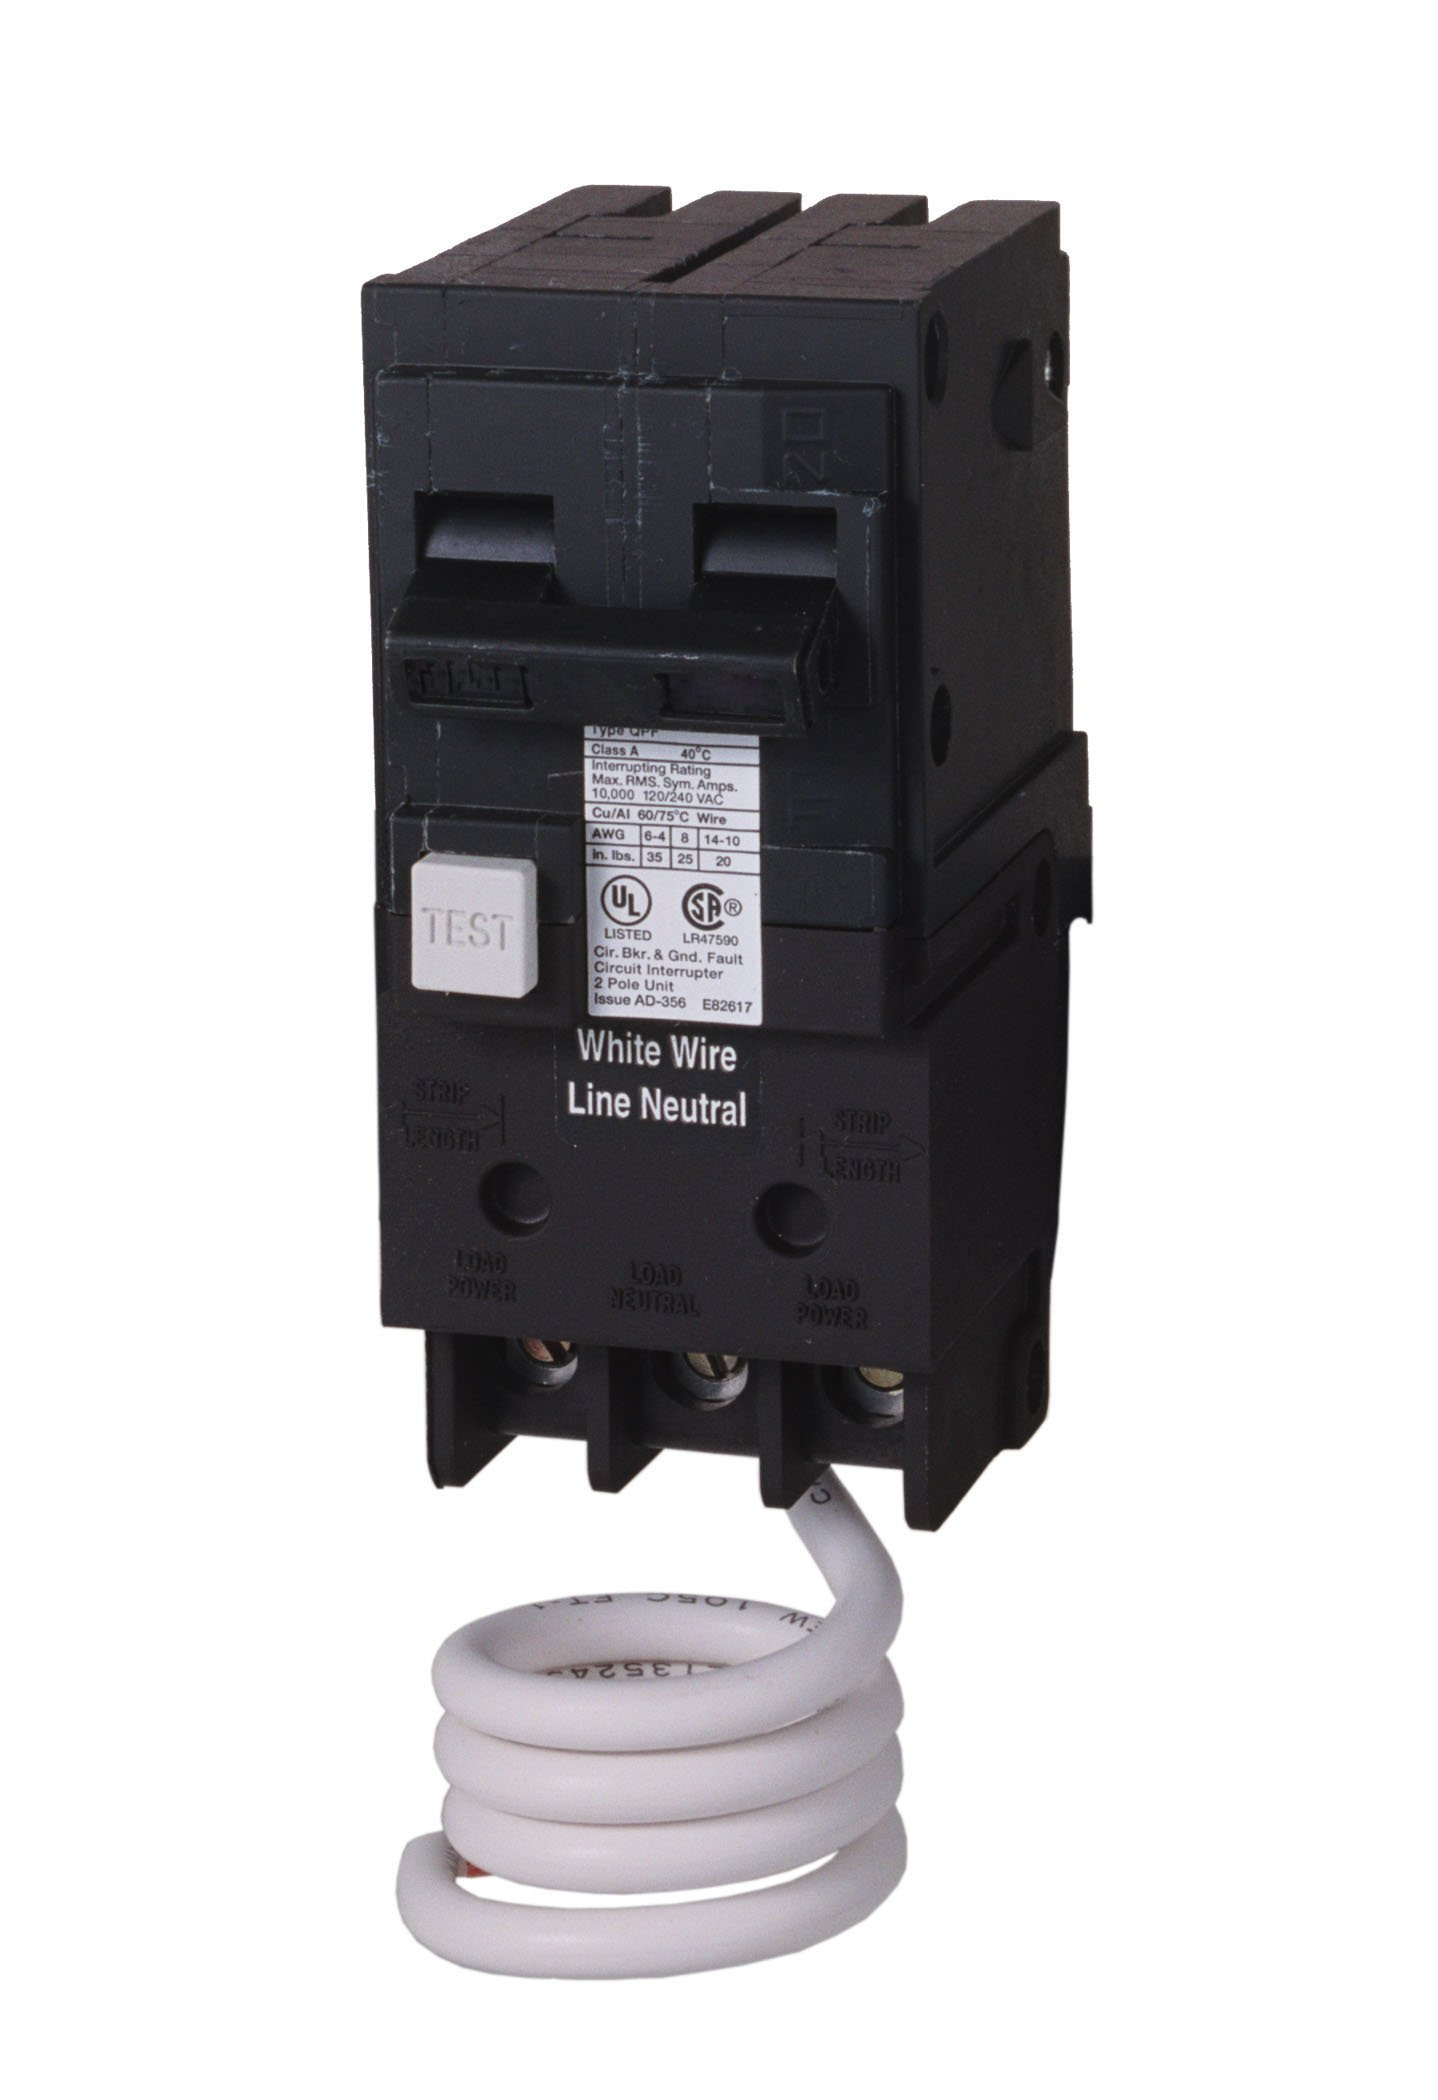 QE220 20-Amp Double Pole 240-Volt Ground Fault Equipment Protection Circuit Breaker